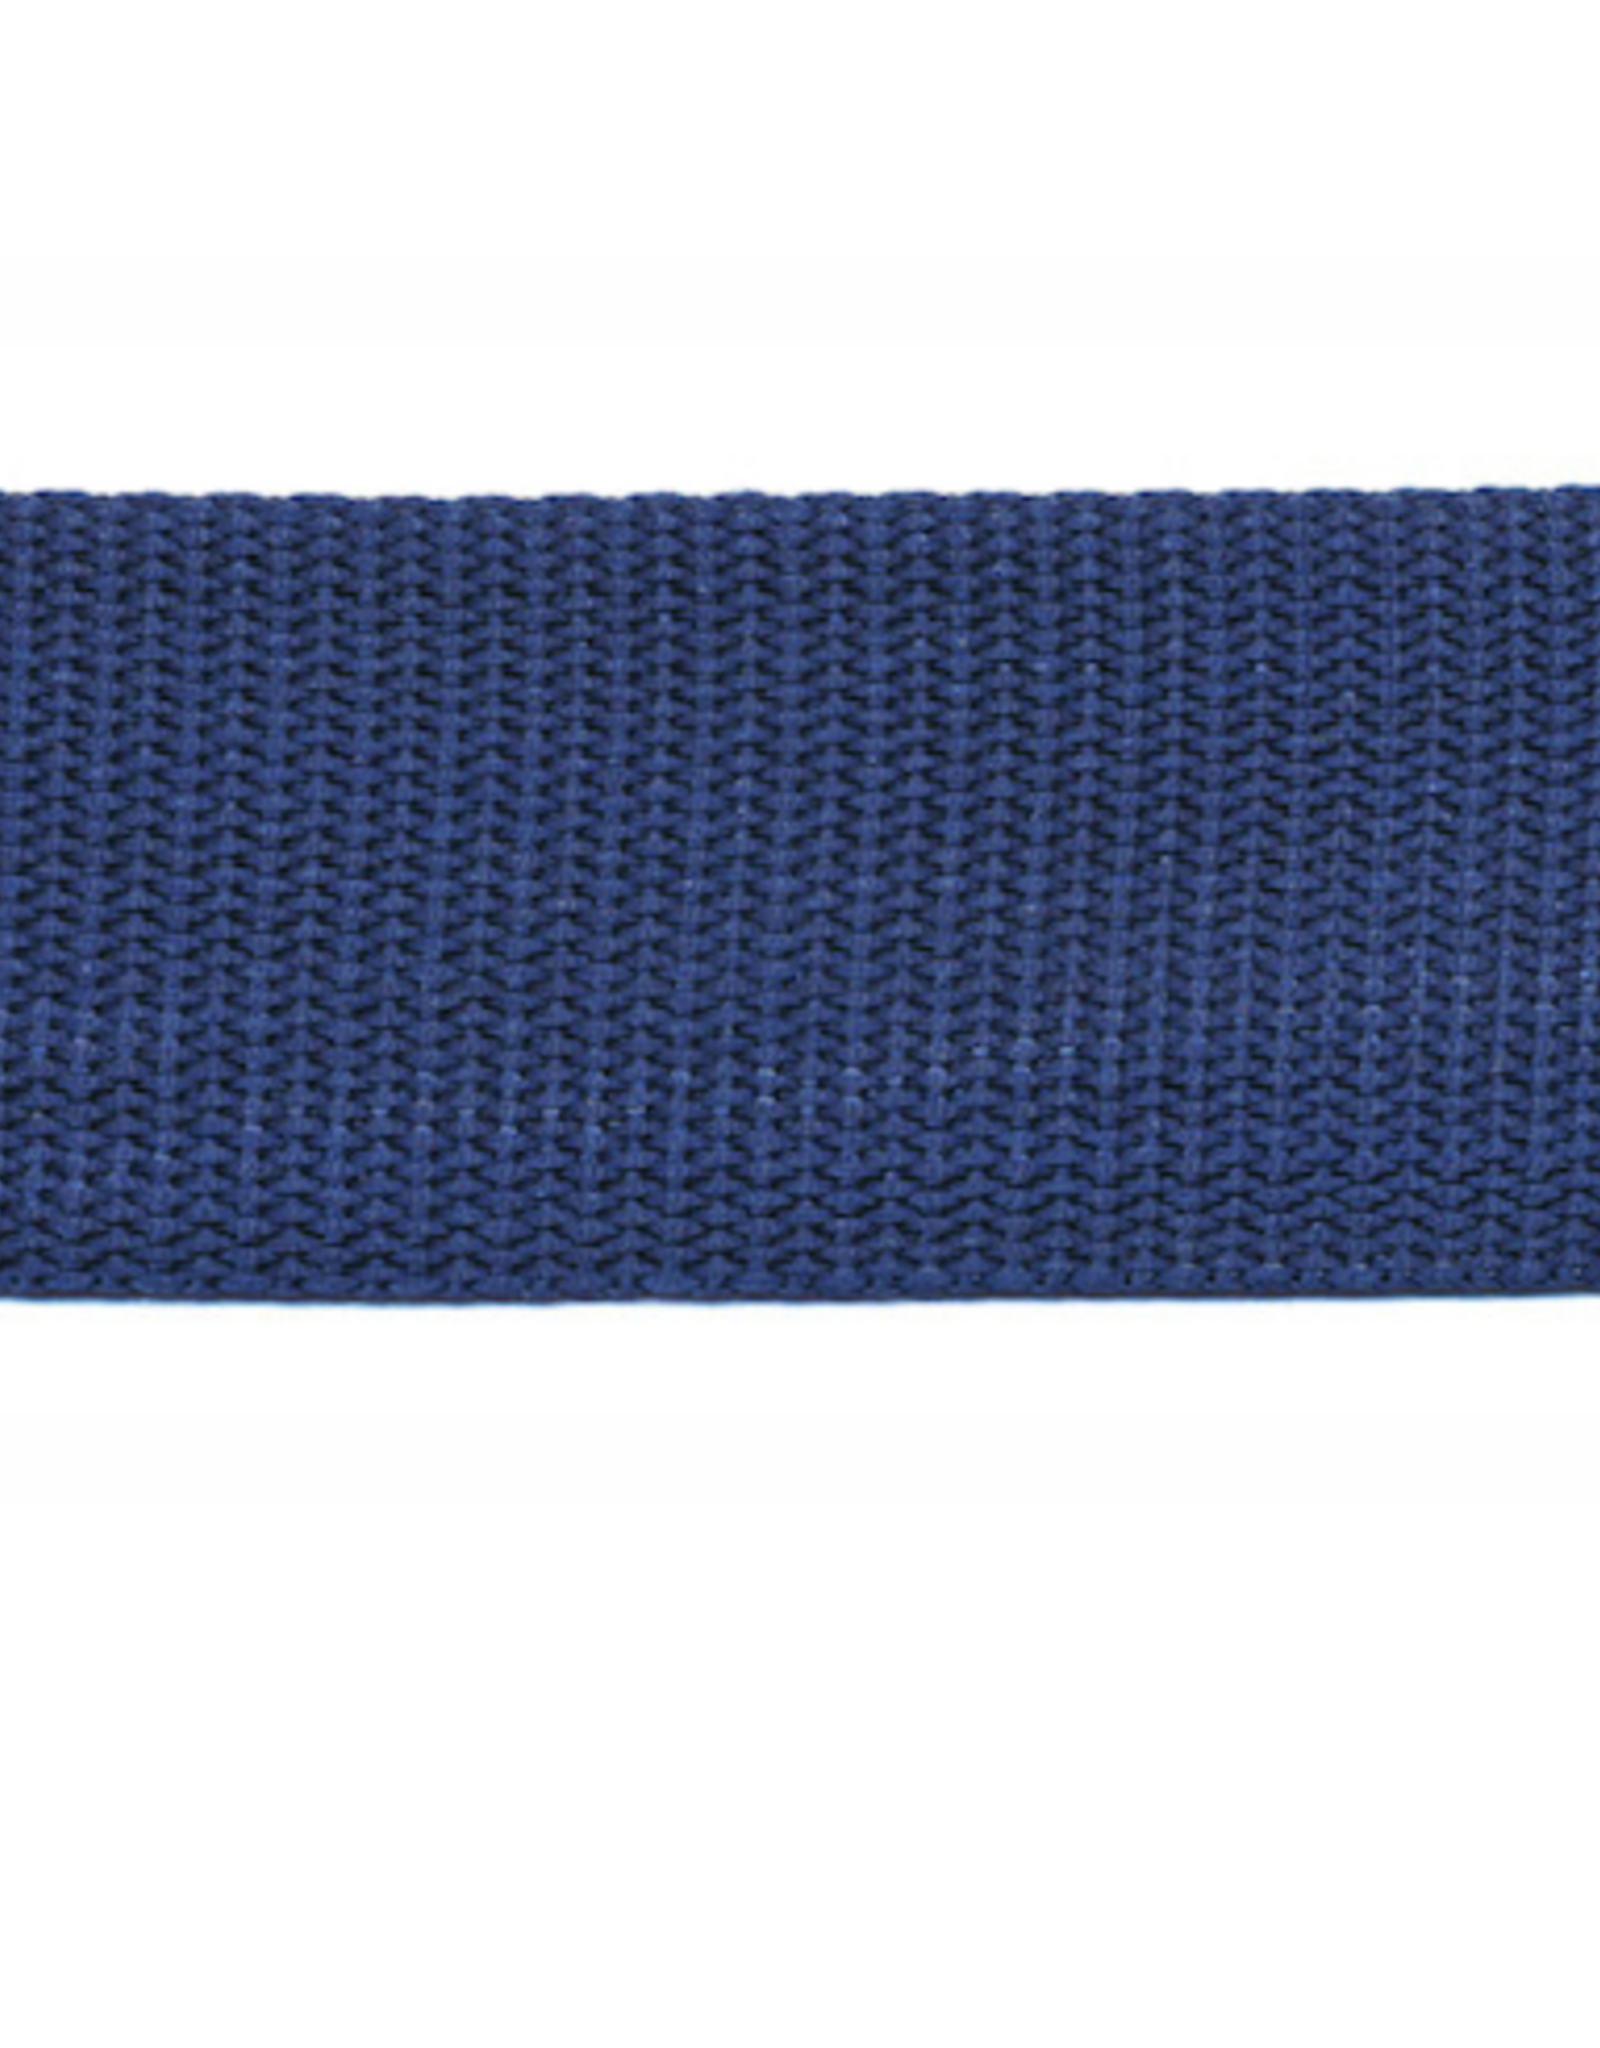 Tassenband Nylon - 30mm - Marineblauw